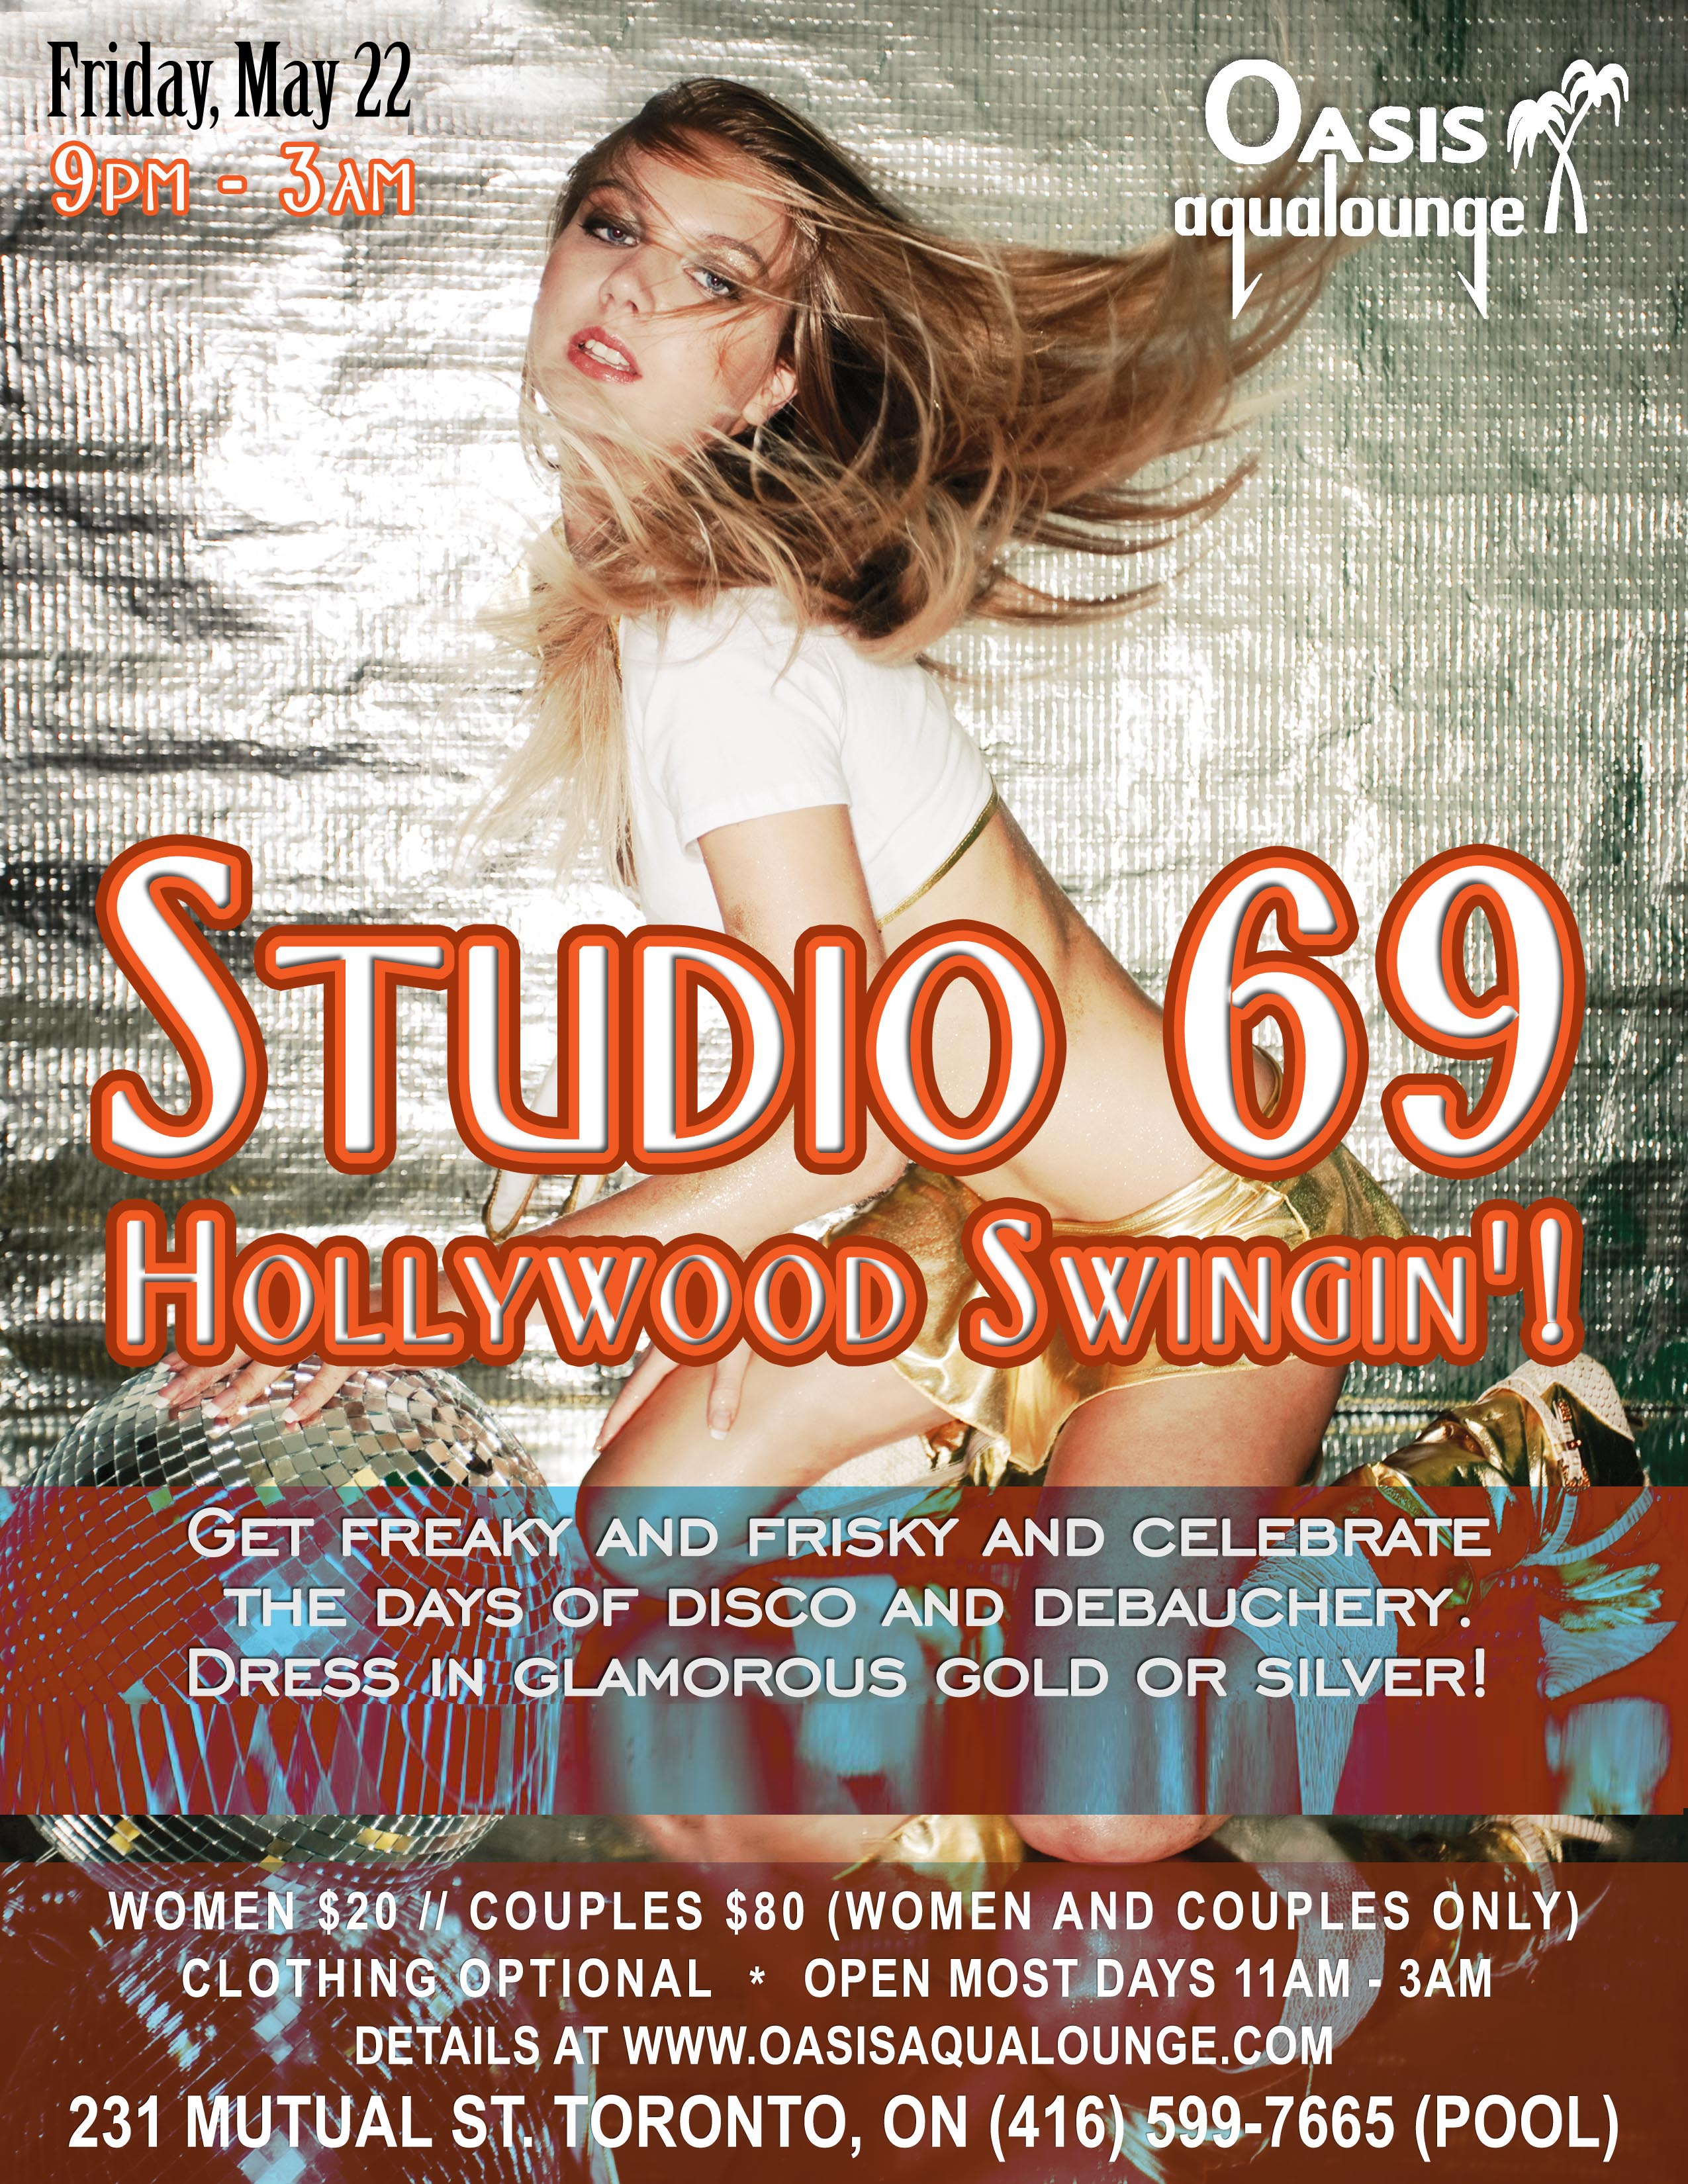 Hollywood swinging part 1 with